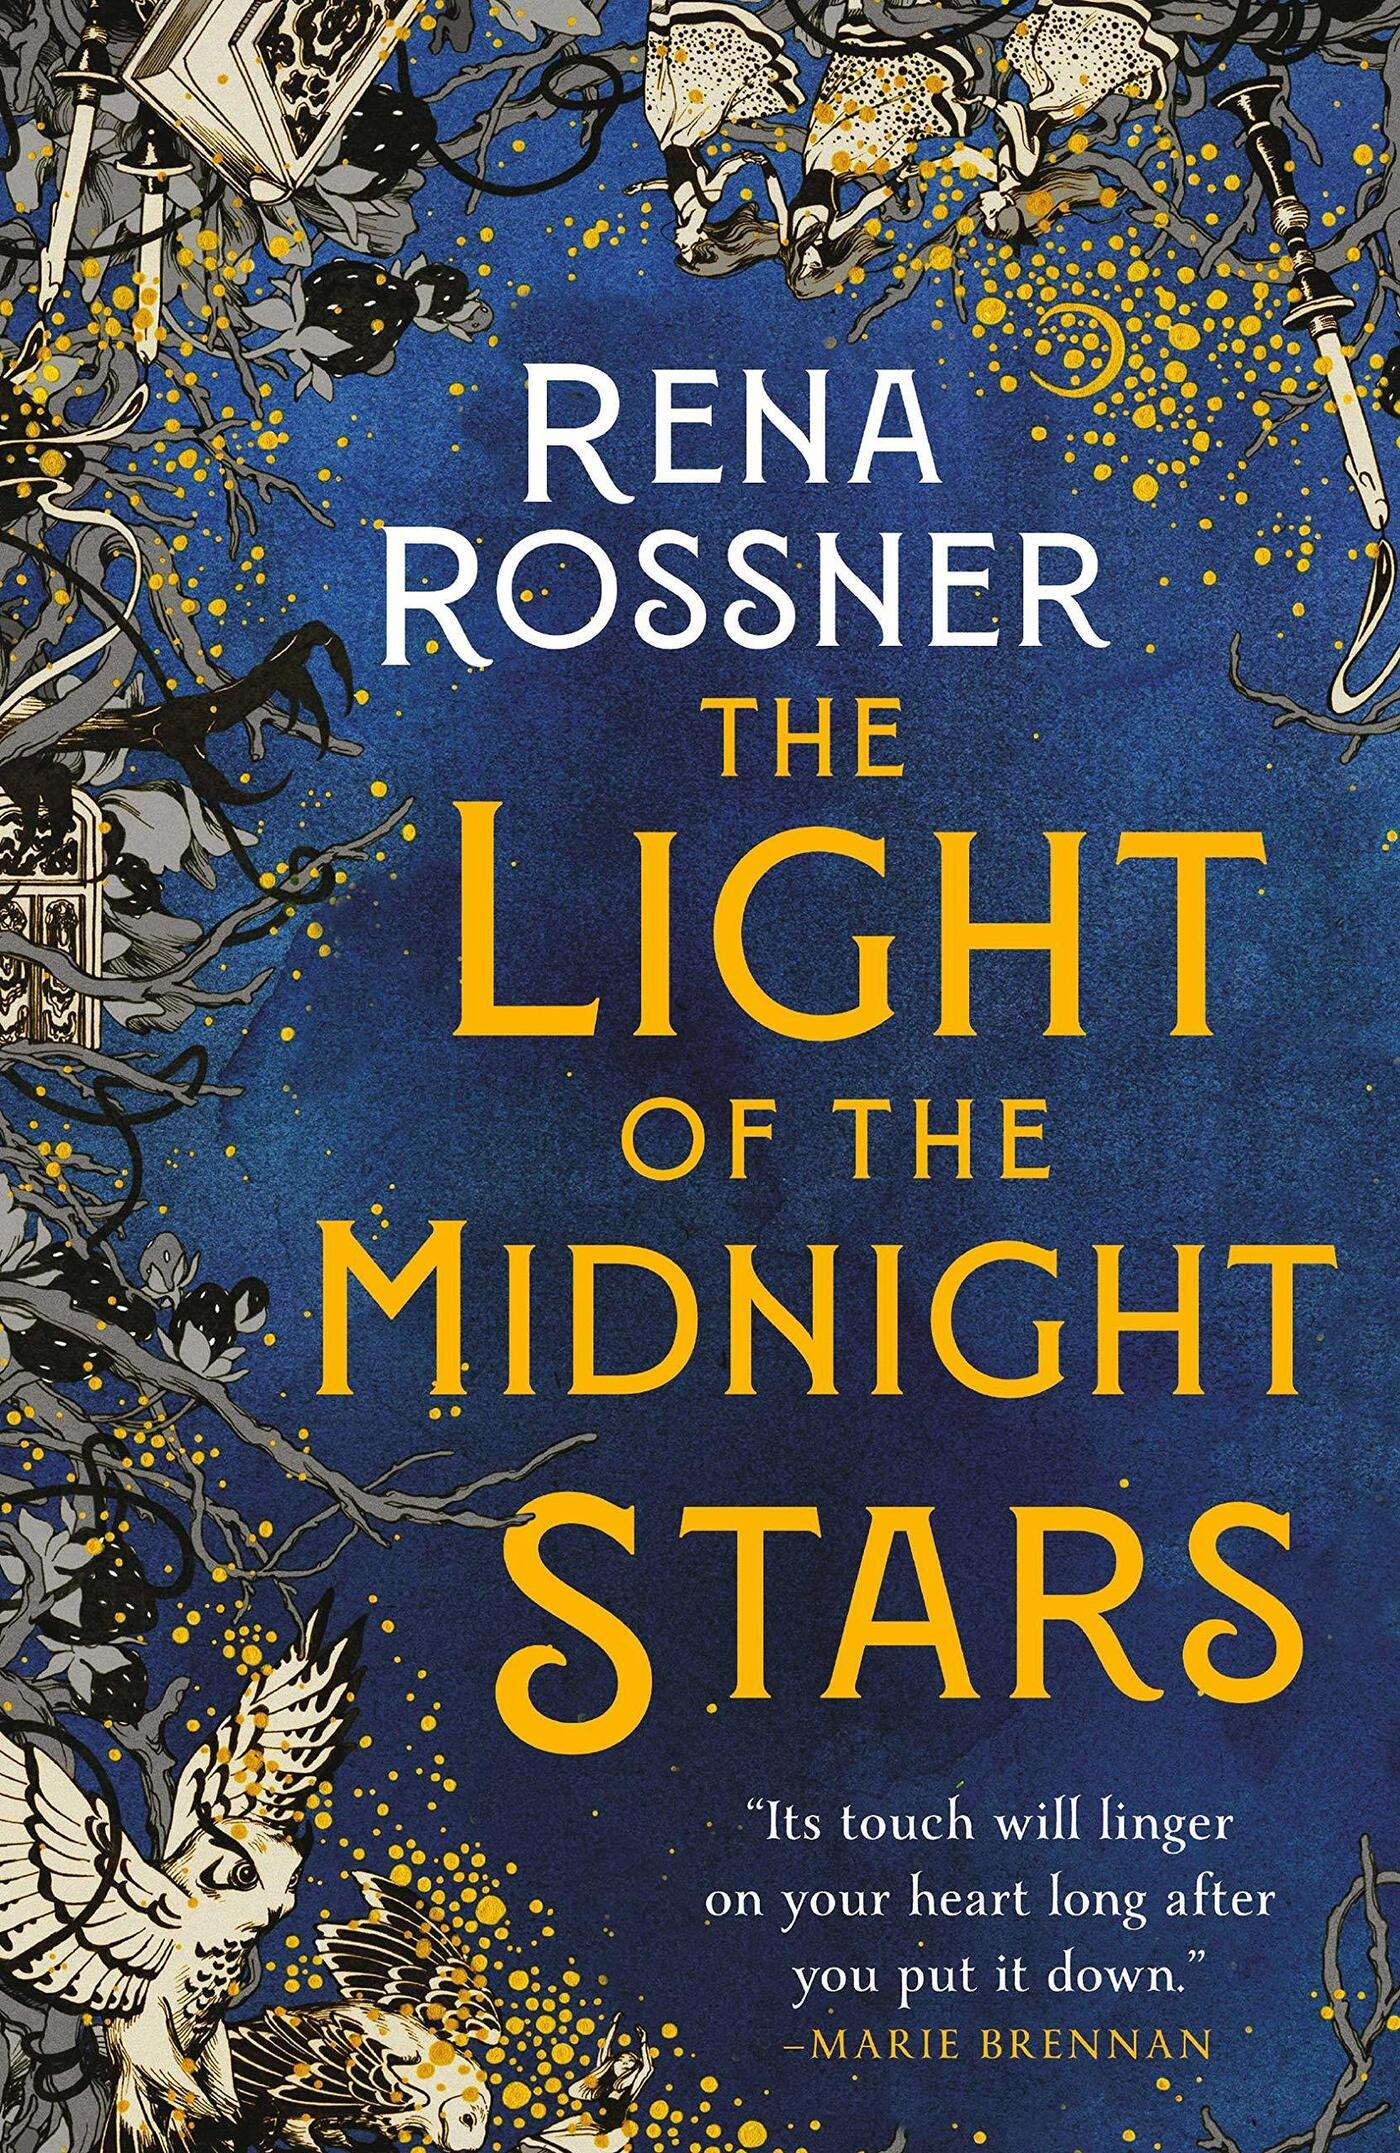 The Light of the Midnight Stars, by Rena Rossner